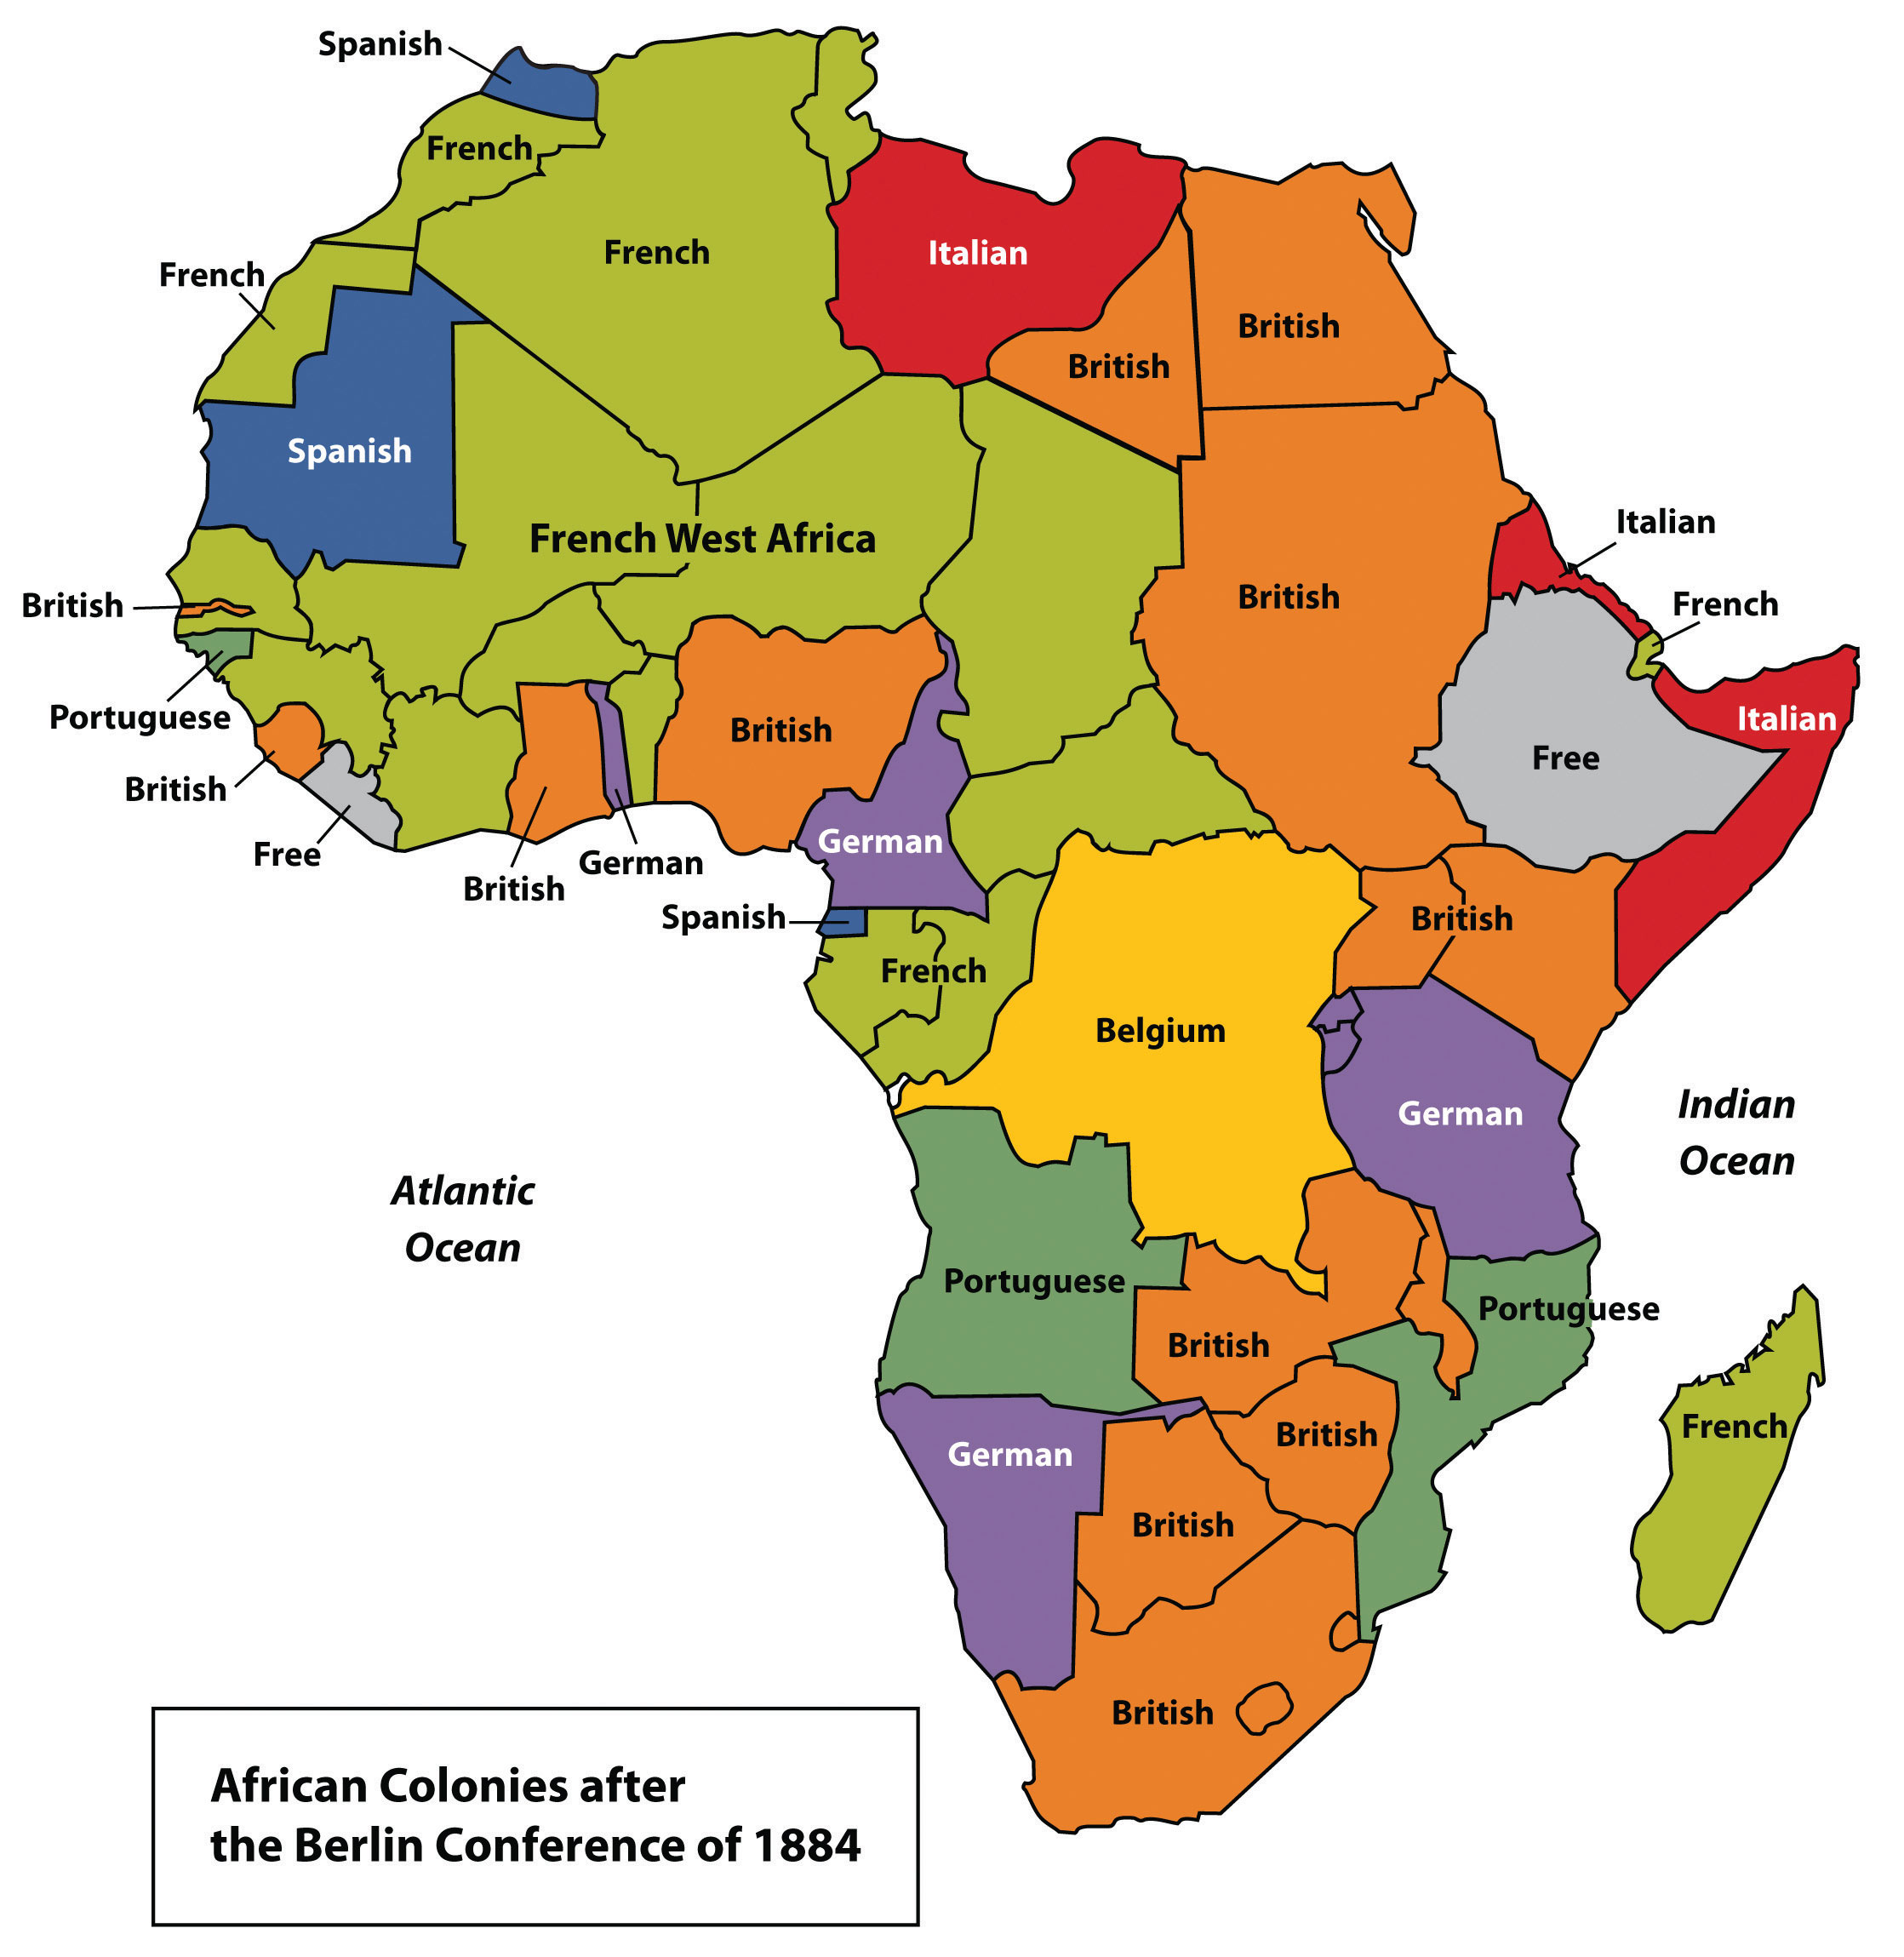 Map Of Africa Geography.A Geographical Analysis Of Sub Saharan Africa